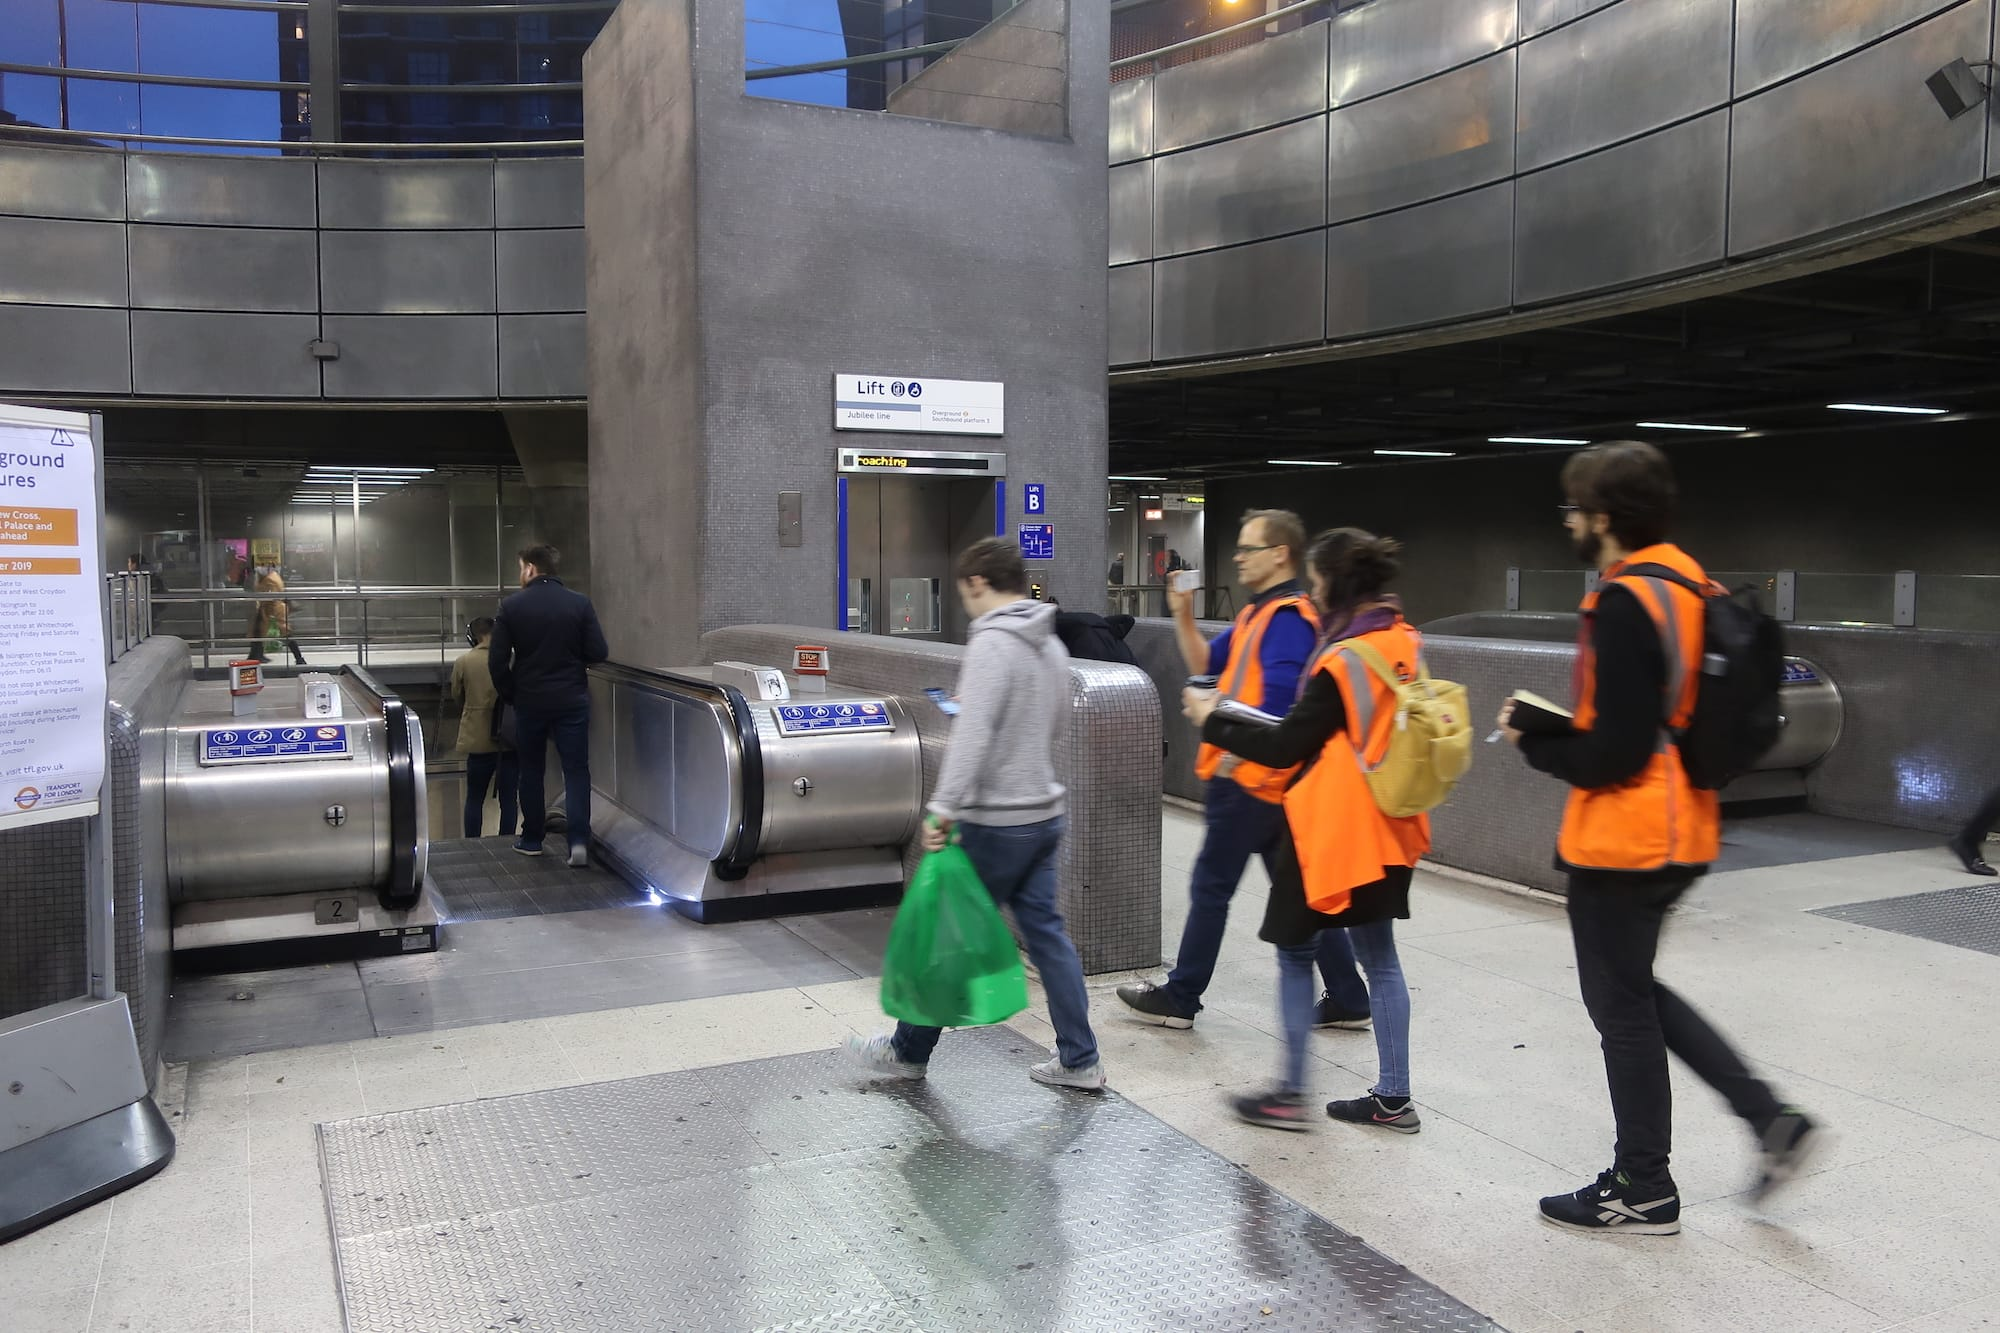 People in a train station. Three people in orange hi-vis jackets are walking behind a person holding a phone.